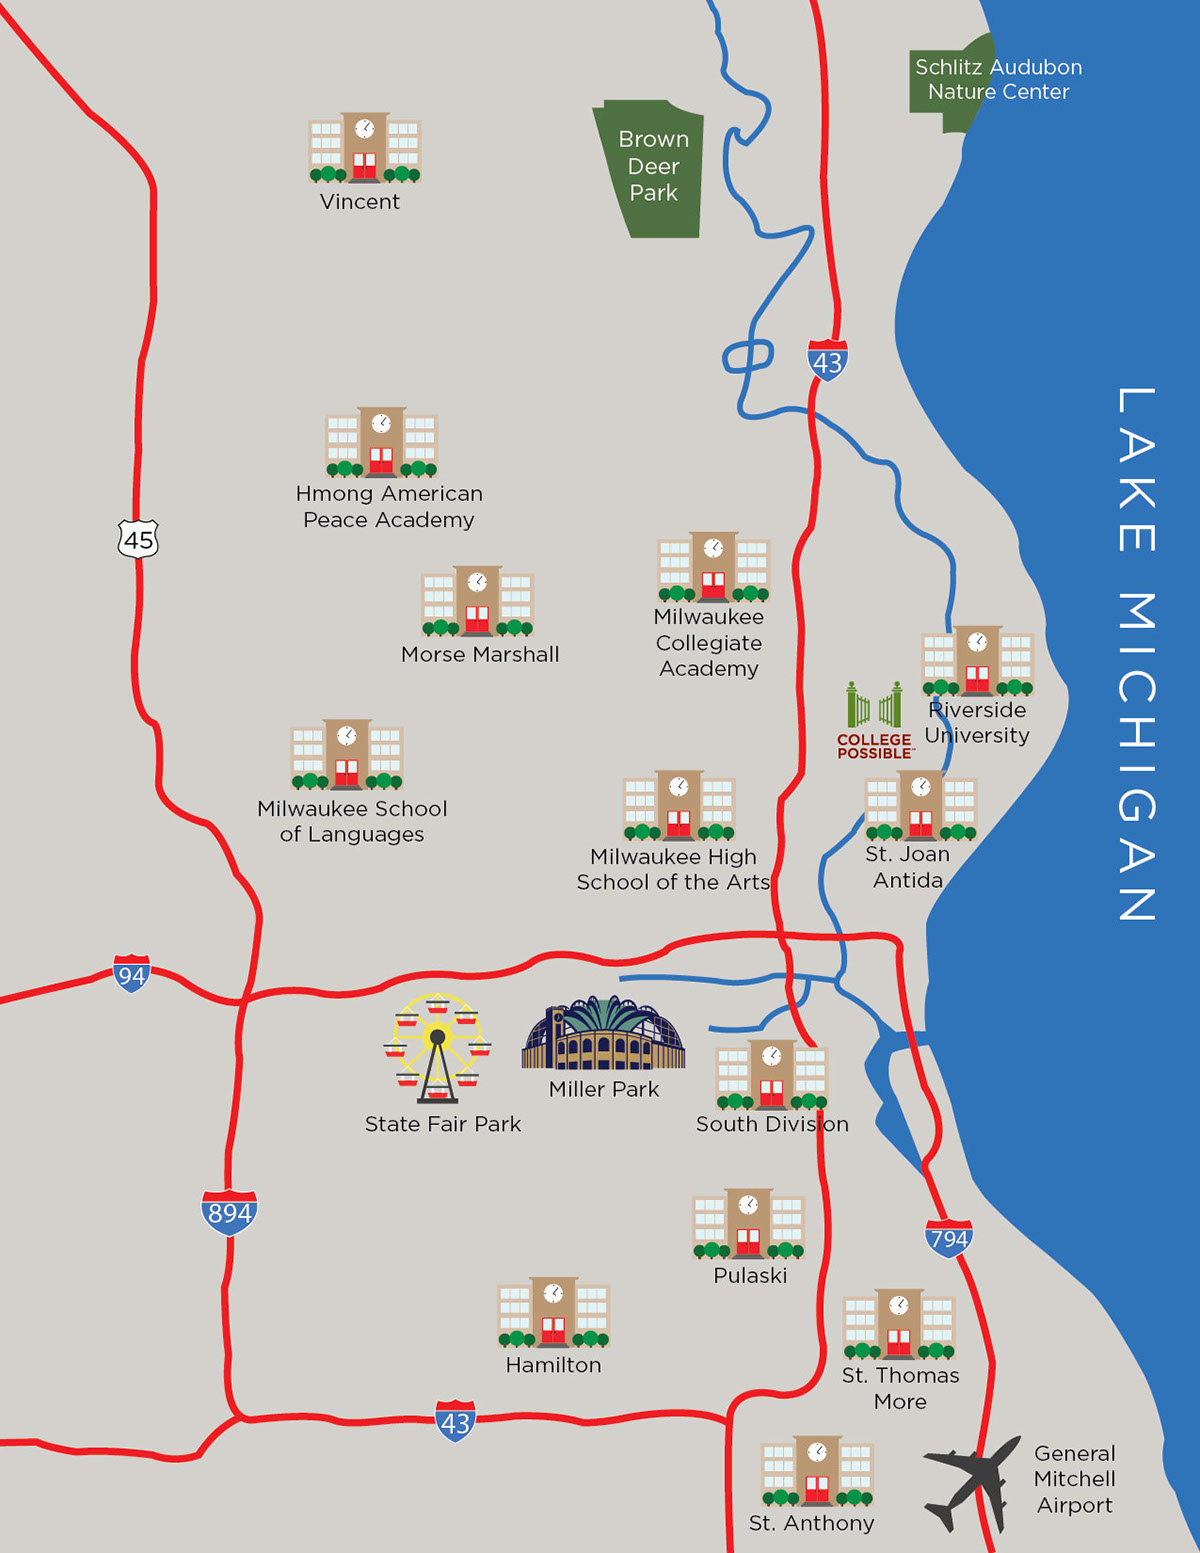 College Possible Milwaukee Map on Behance